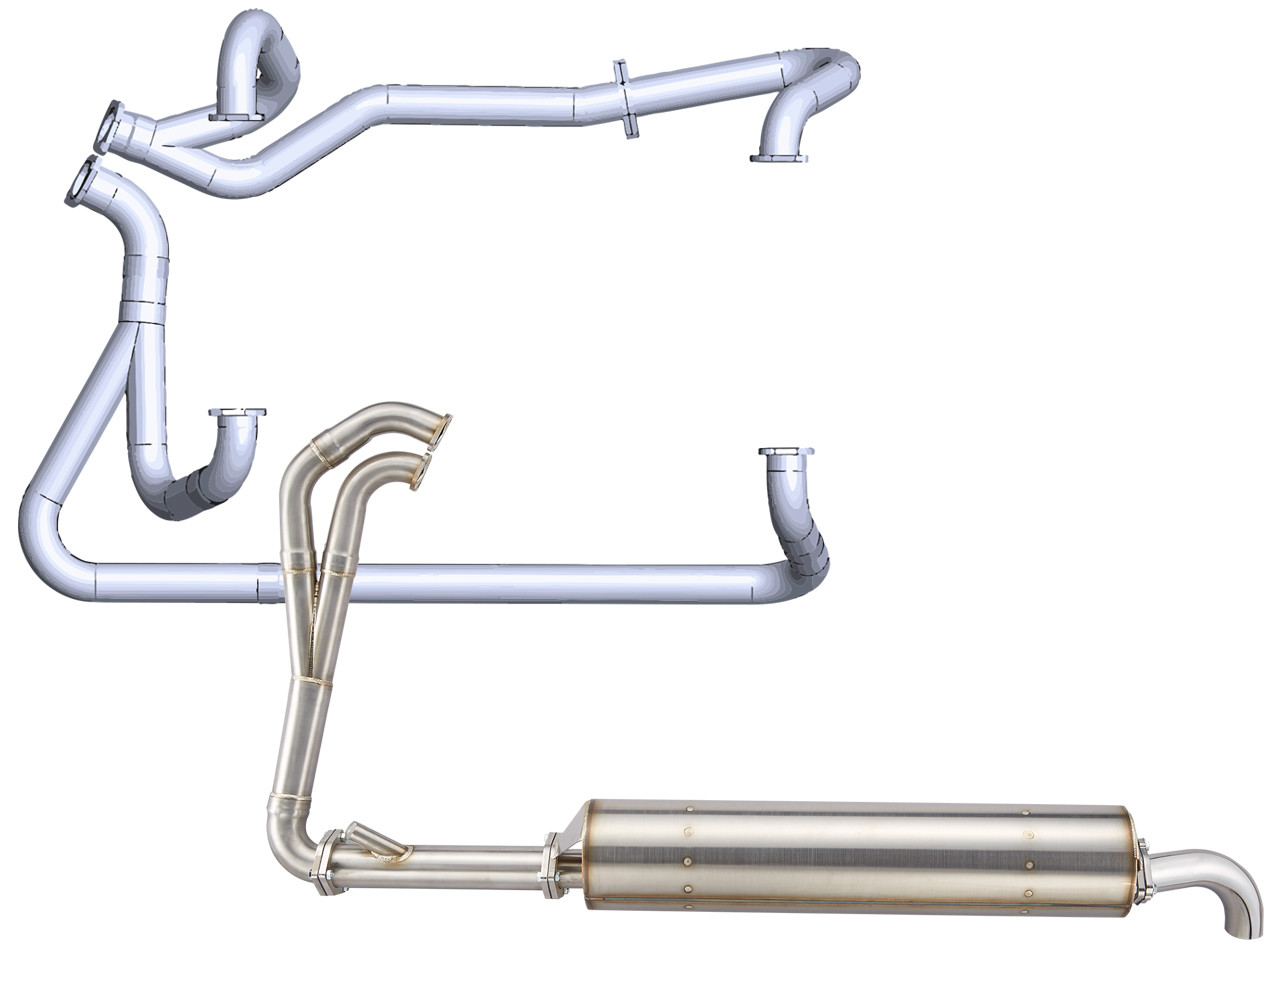 VW T3 2.1L POWER EXHAUST SYSTEM, FROM HEADER TO TAIL PIPE